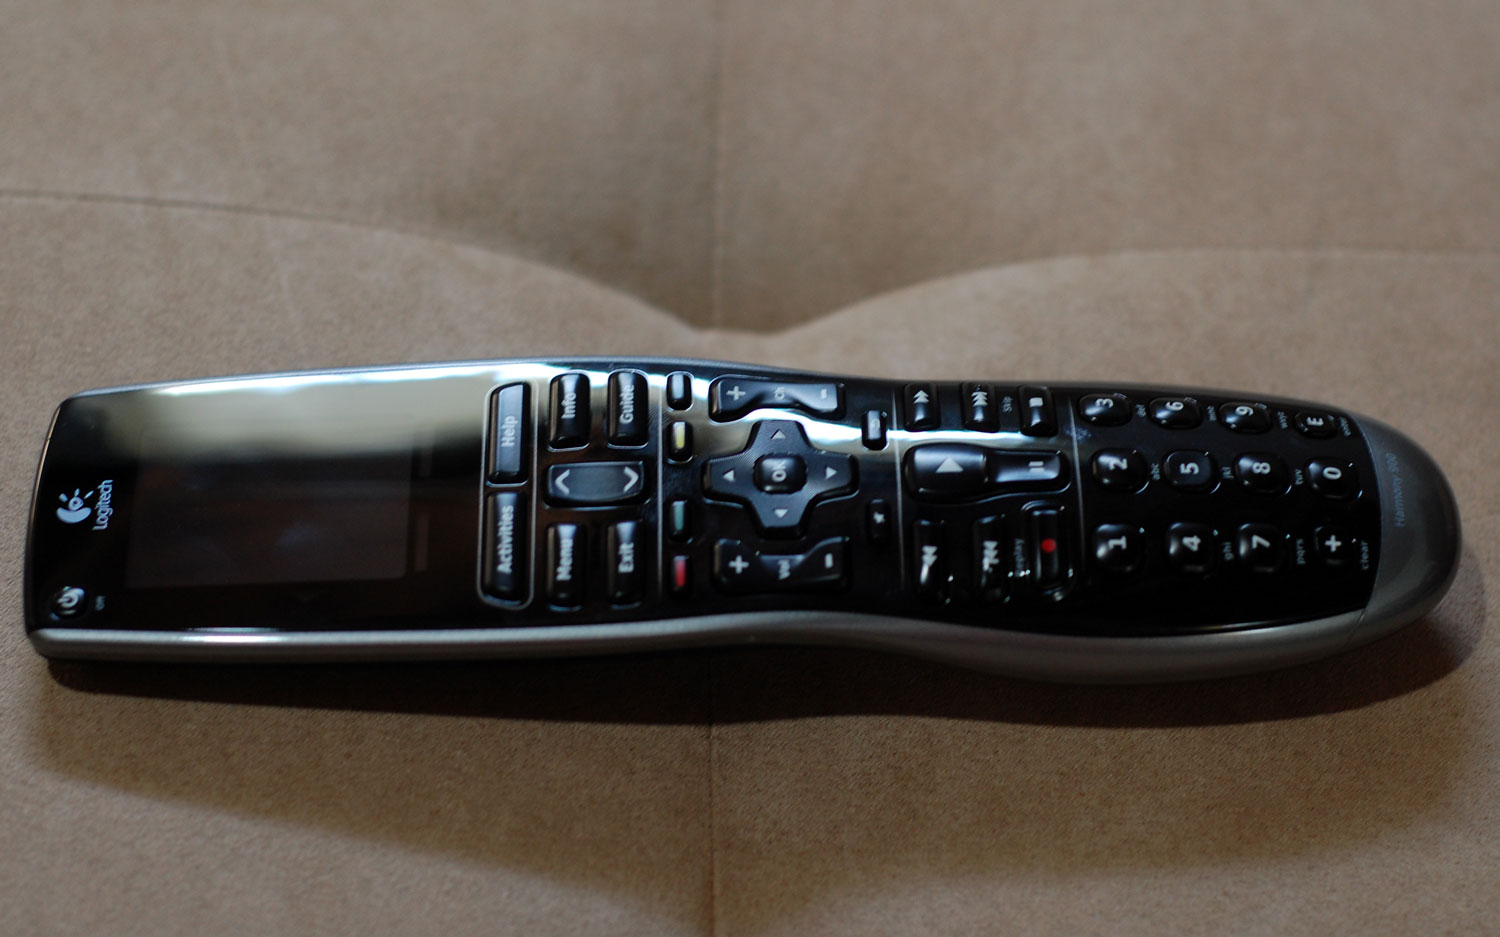 Review: Logitech Harmony 900 universal remote | TechCrunch